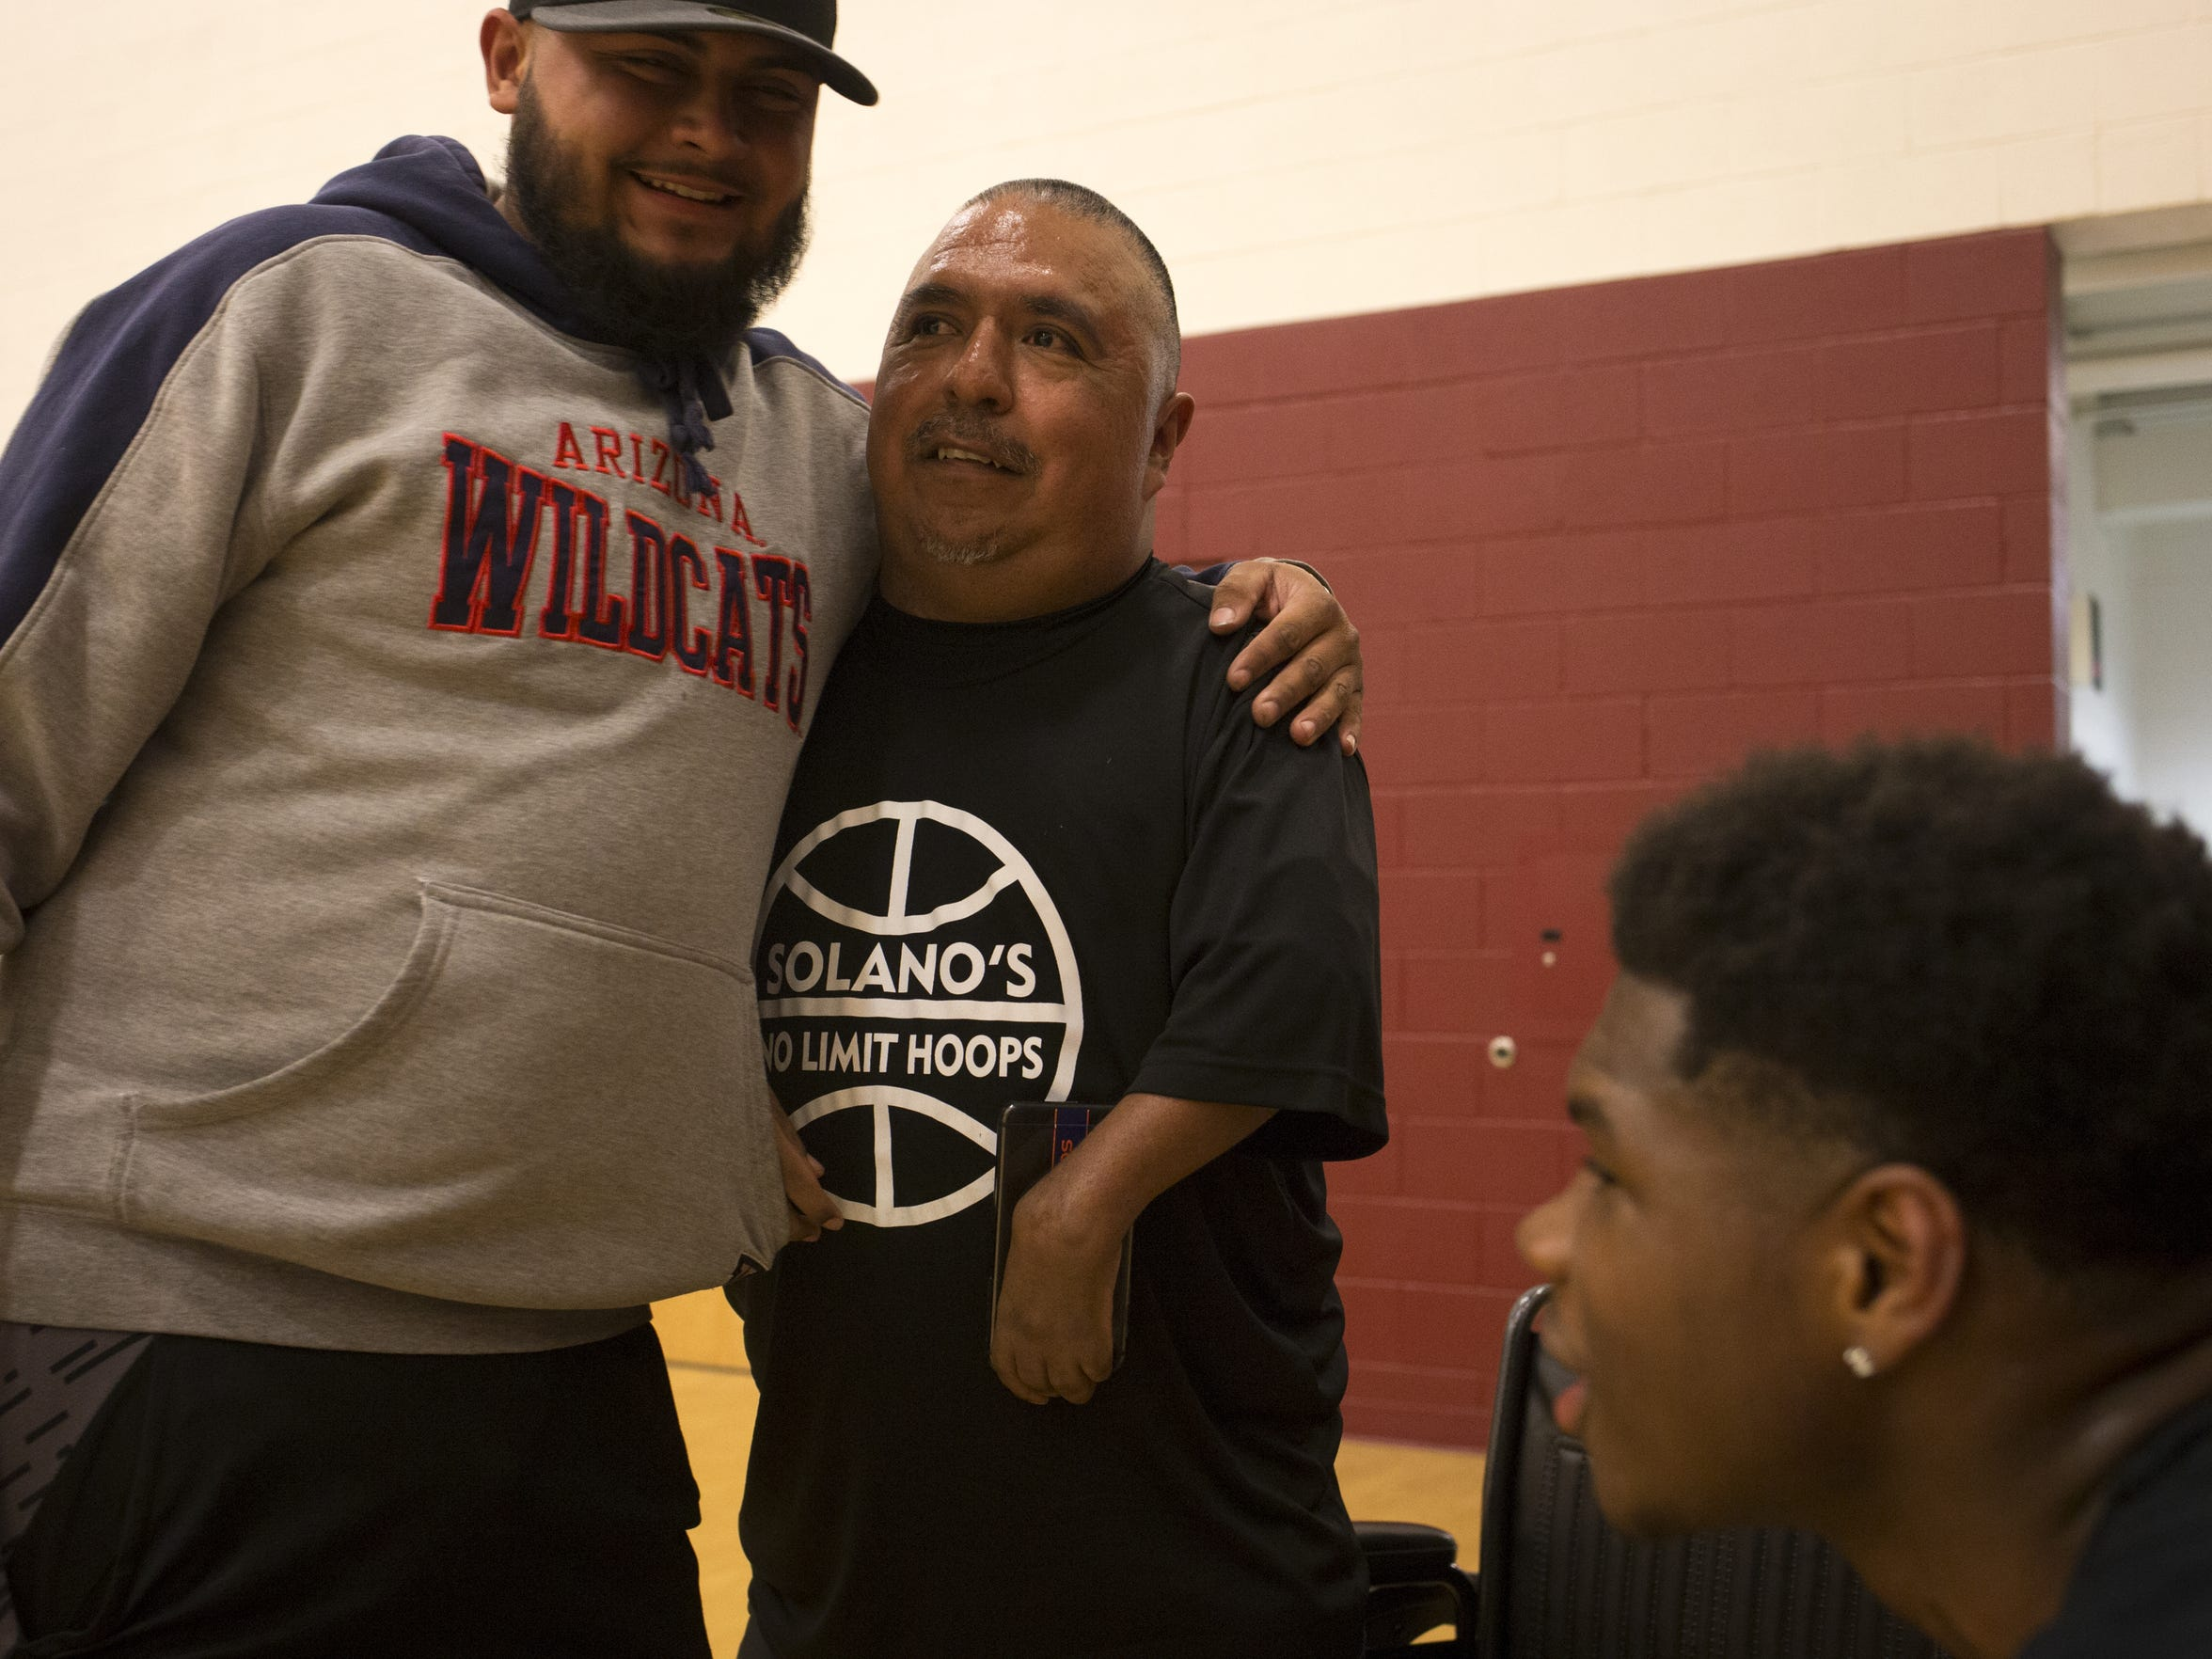 David Solano, center, talks with Wilver Calderon, left, during Solano's No Limit Hoops in February.